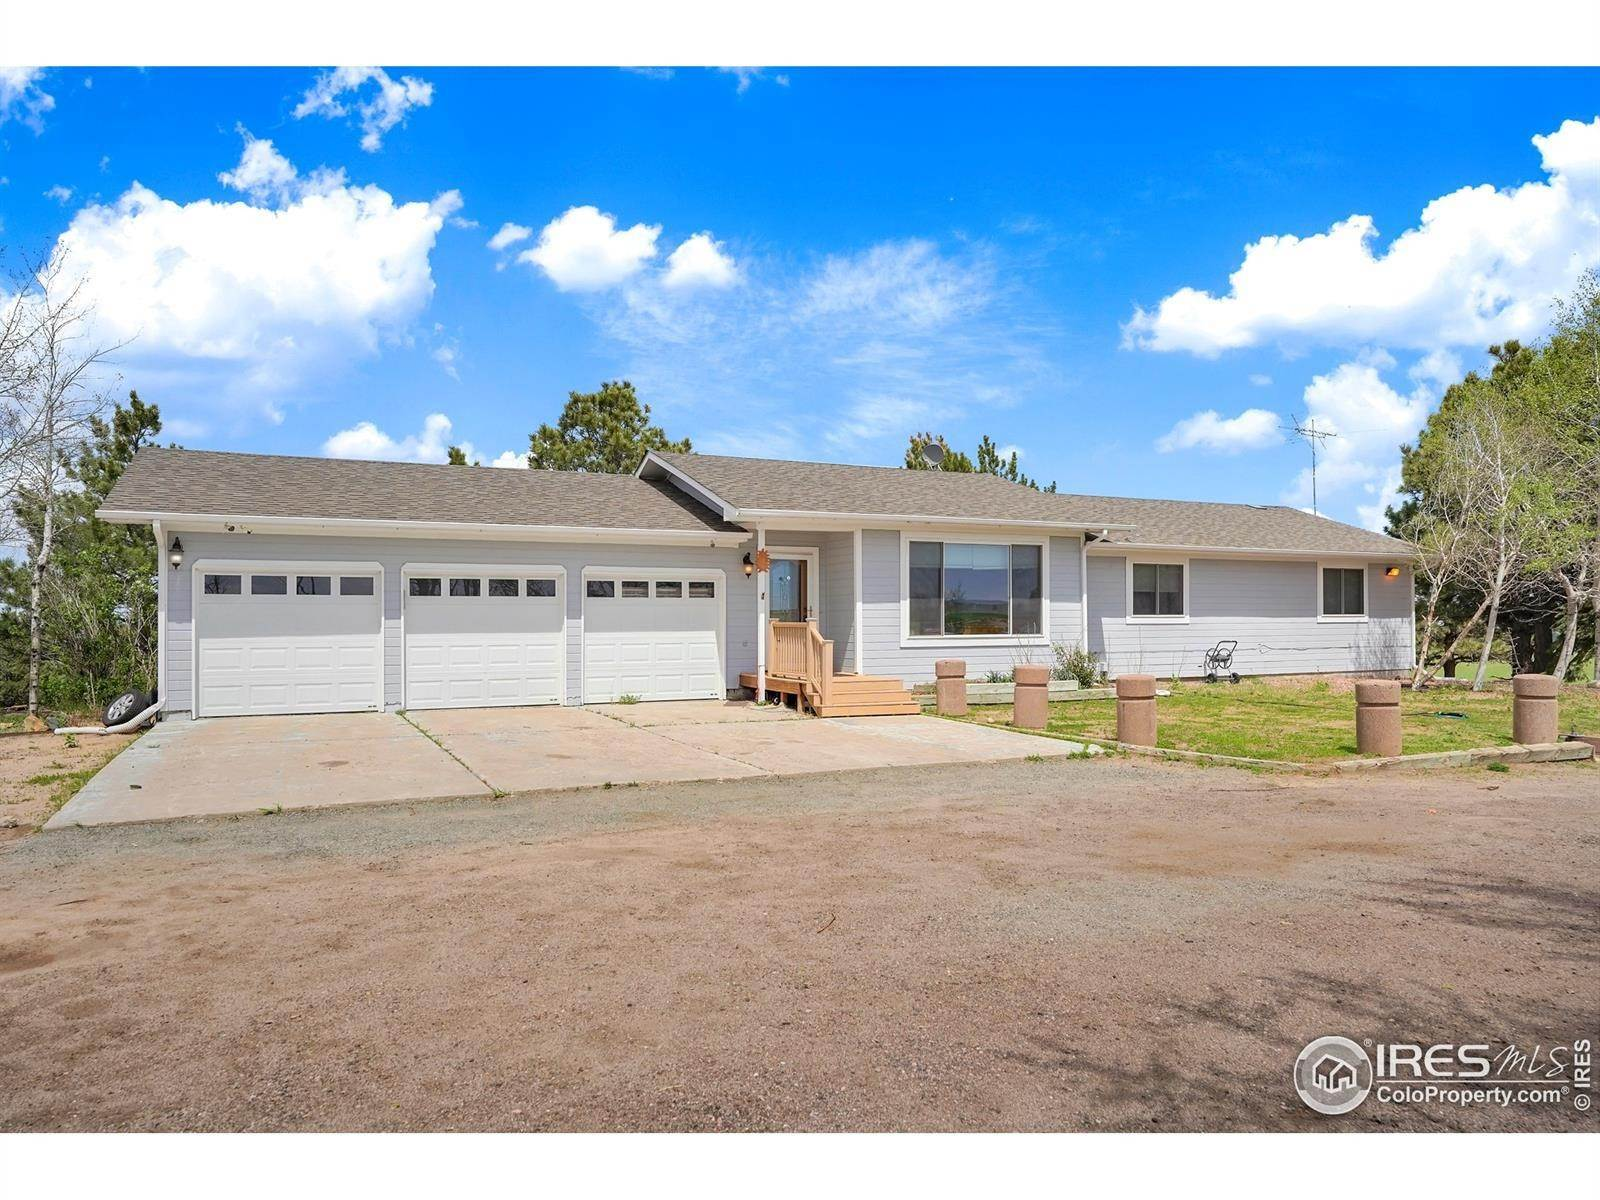 Single Family Homes for Sale at 46376 County Road 53 Bennett, Colorado 80102 United States